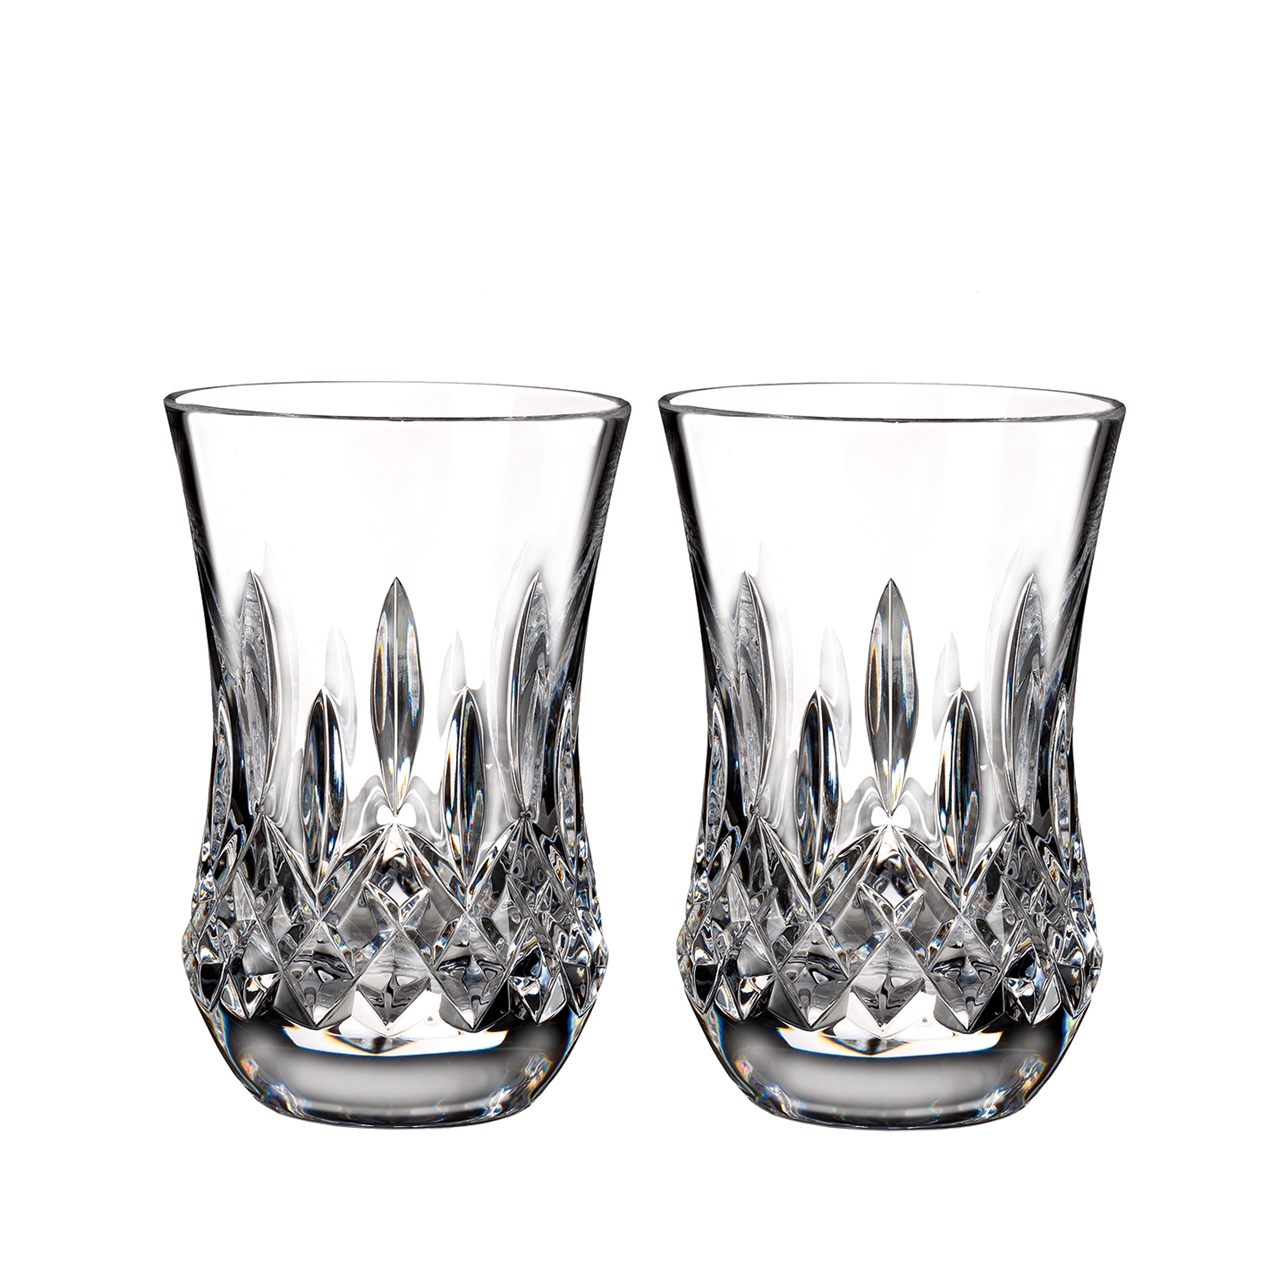 Lismore Connoisseur Flared Sipping Tumbler, Set of 2